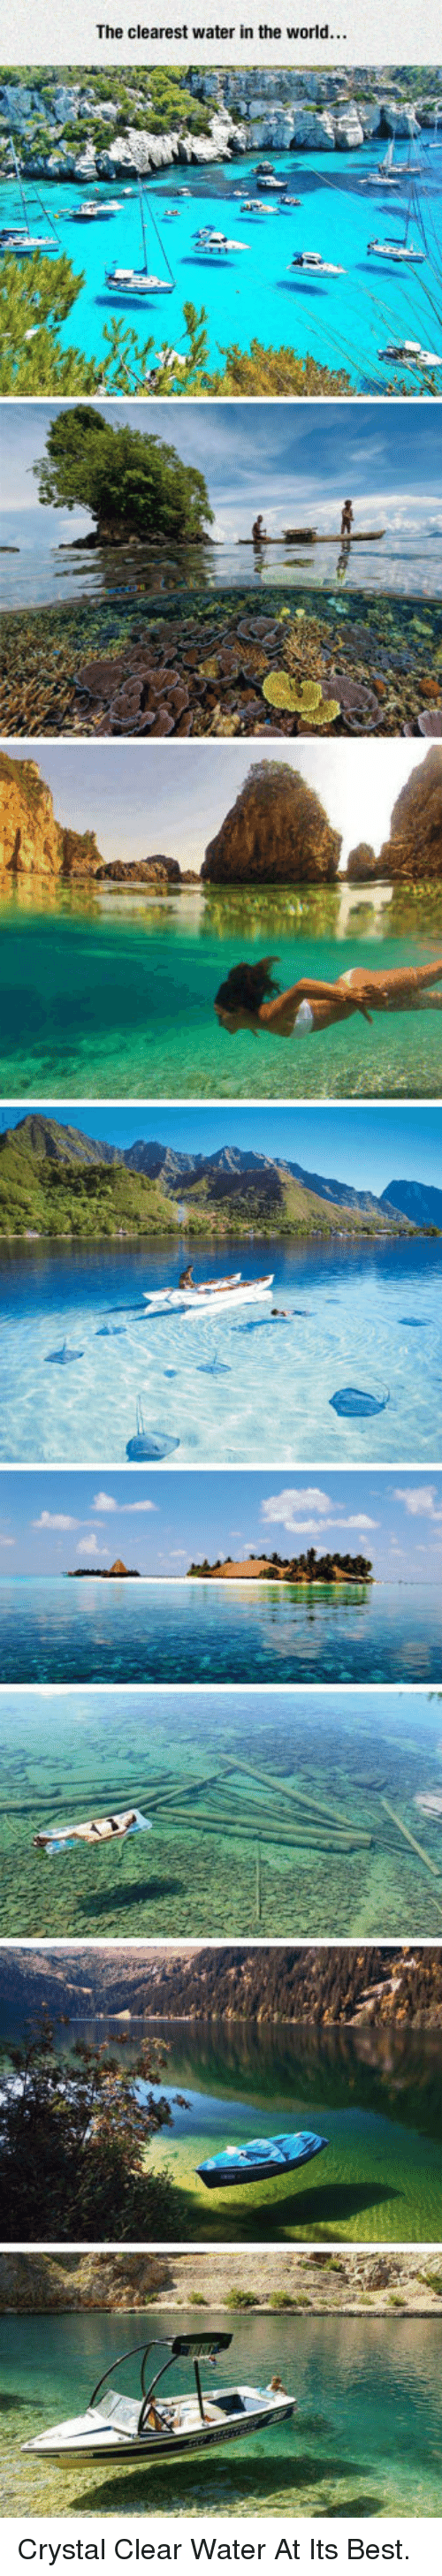 clear water: The clearest water in the world... <p>Crystal Clear Water At Its Best.</p>